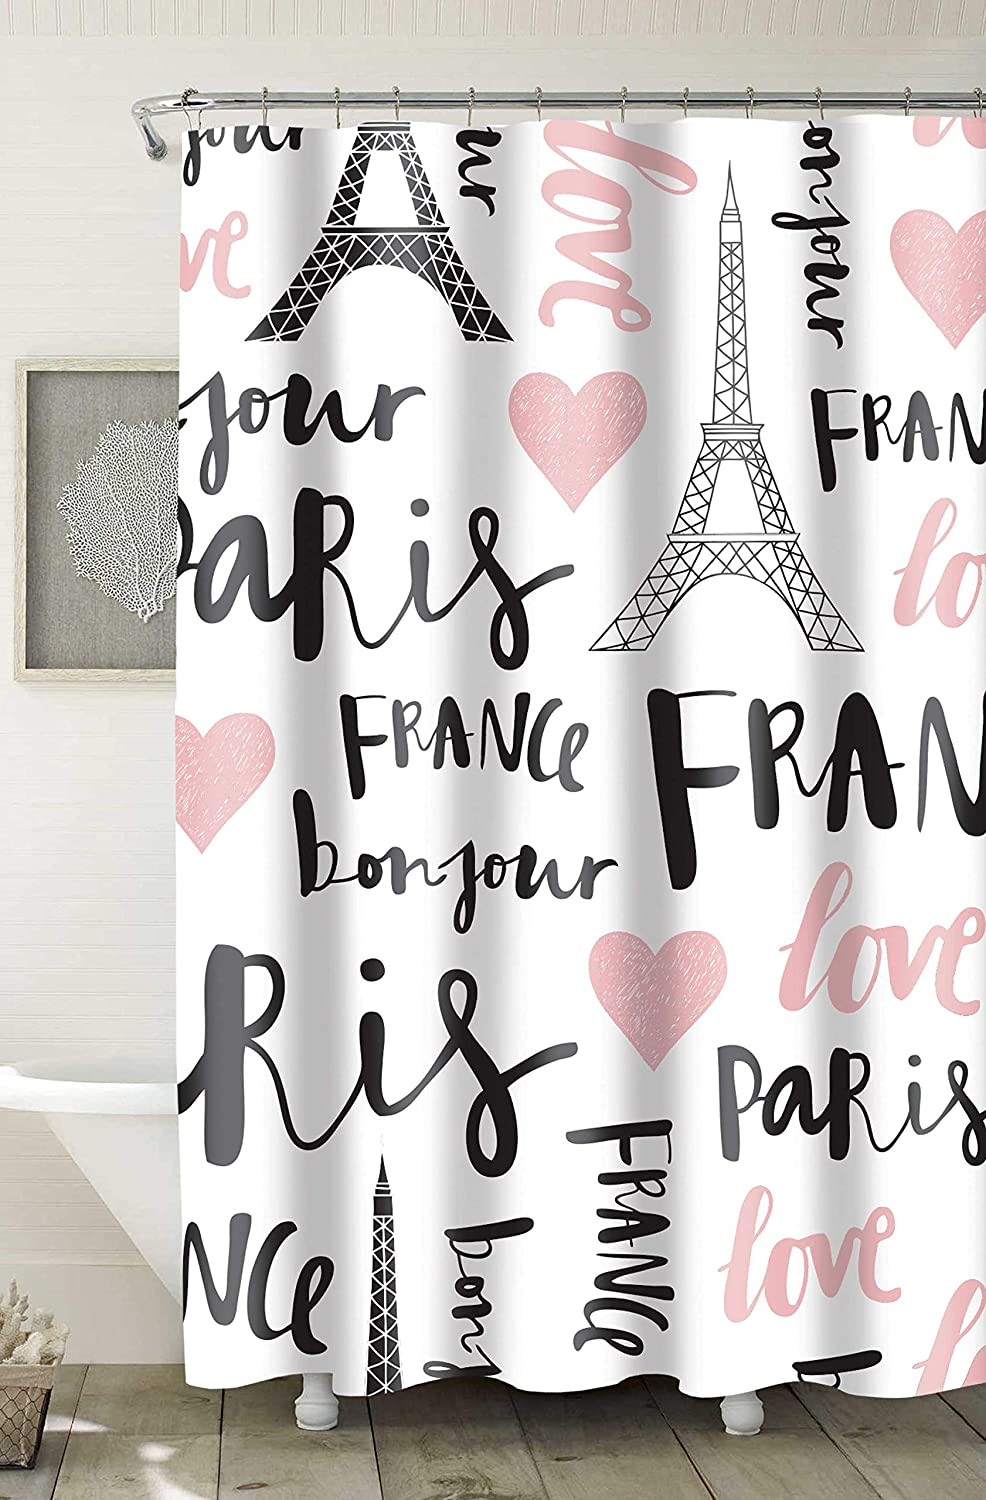 HOME EXPRESSIONS Decorative Paris Love Print PEVA Shower Curtain Liner Waterproof, Mold/Mildew Resistant, for Bathroom Showers, Stalls and Bathtubs (Printed Paris Love Design White/Black/Pink)